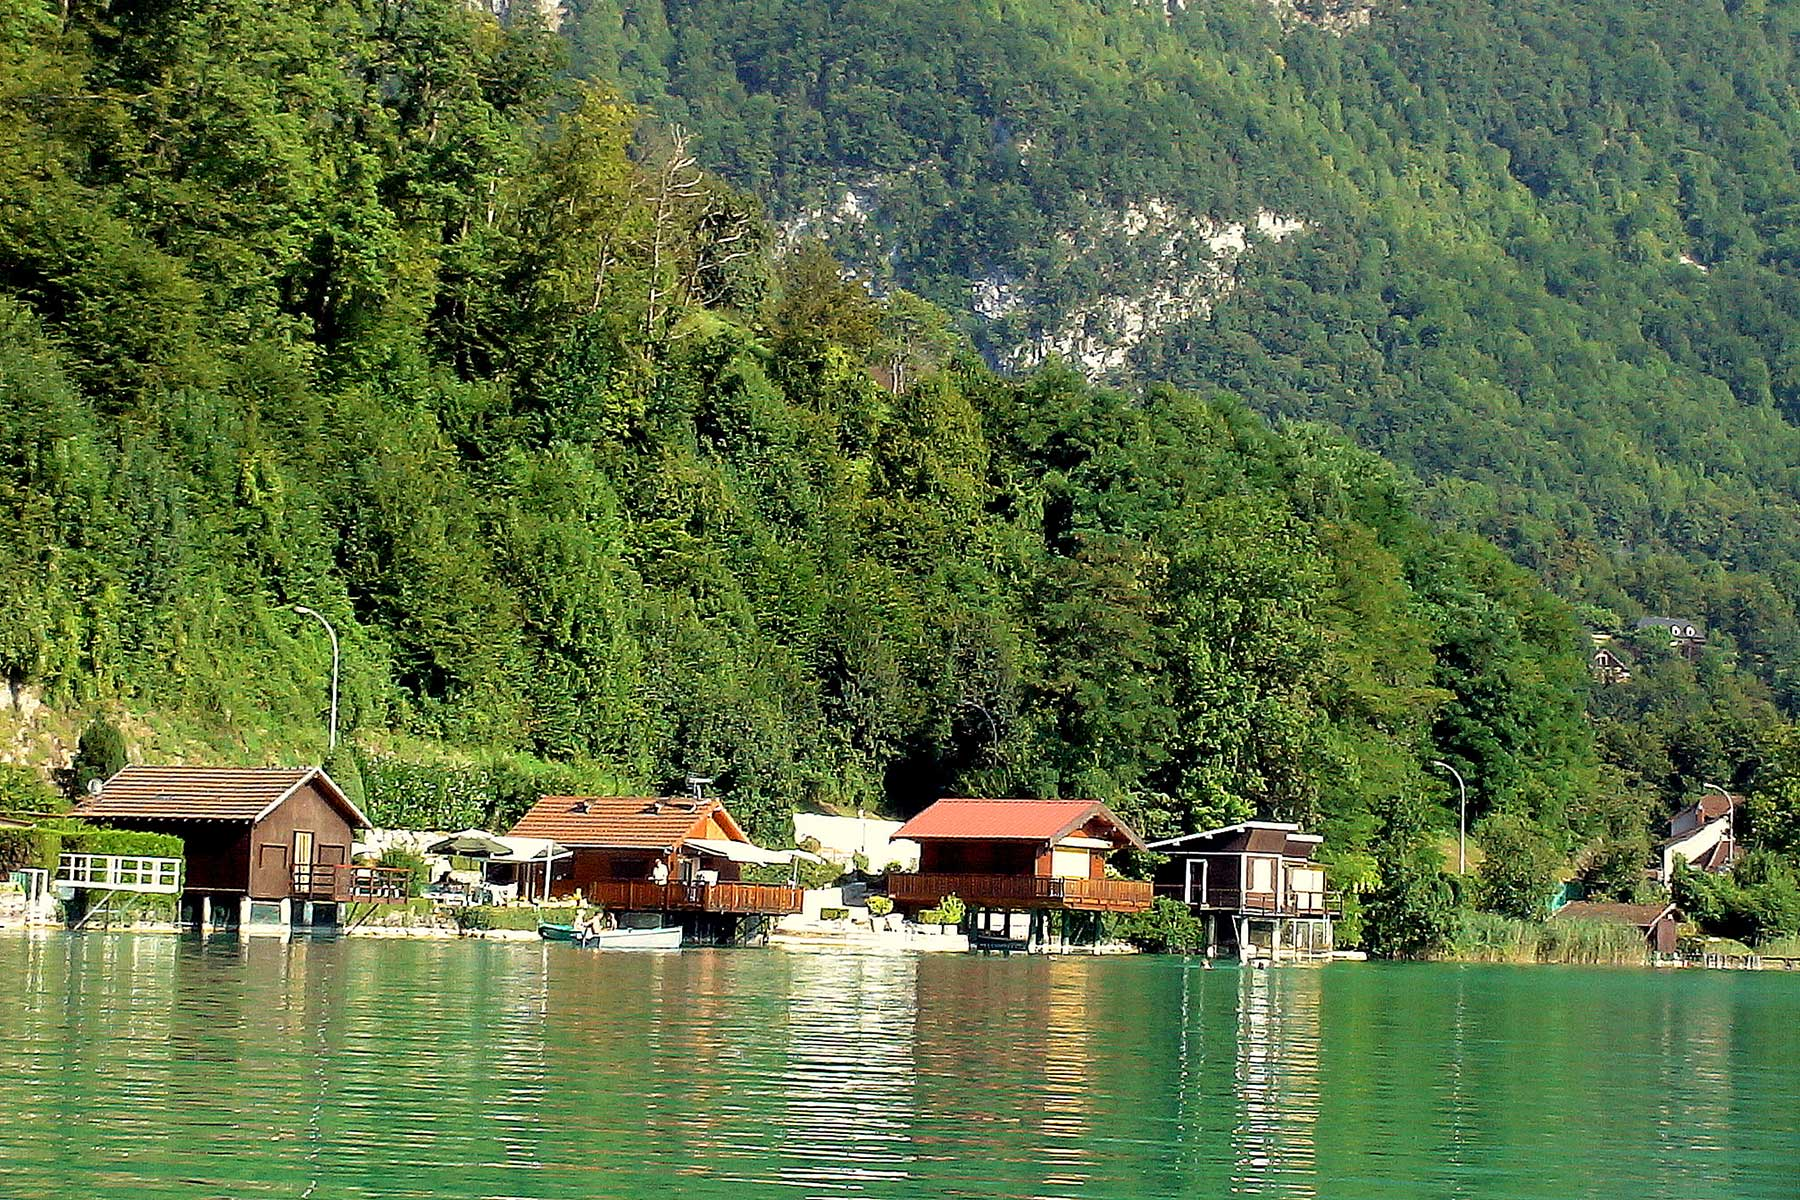 rives lac d'Aiguebelette